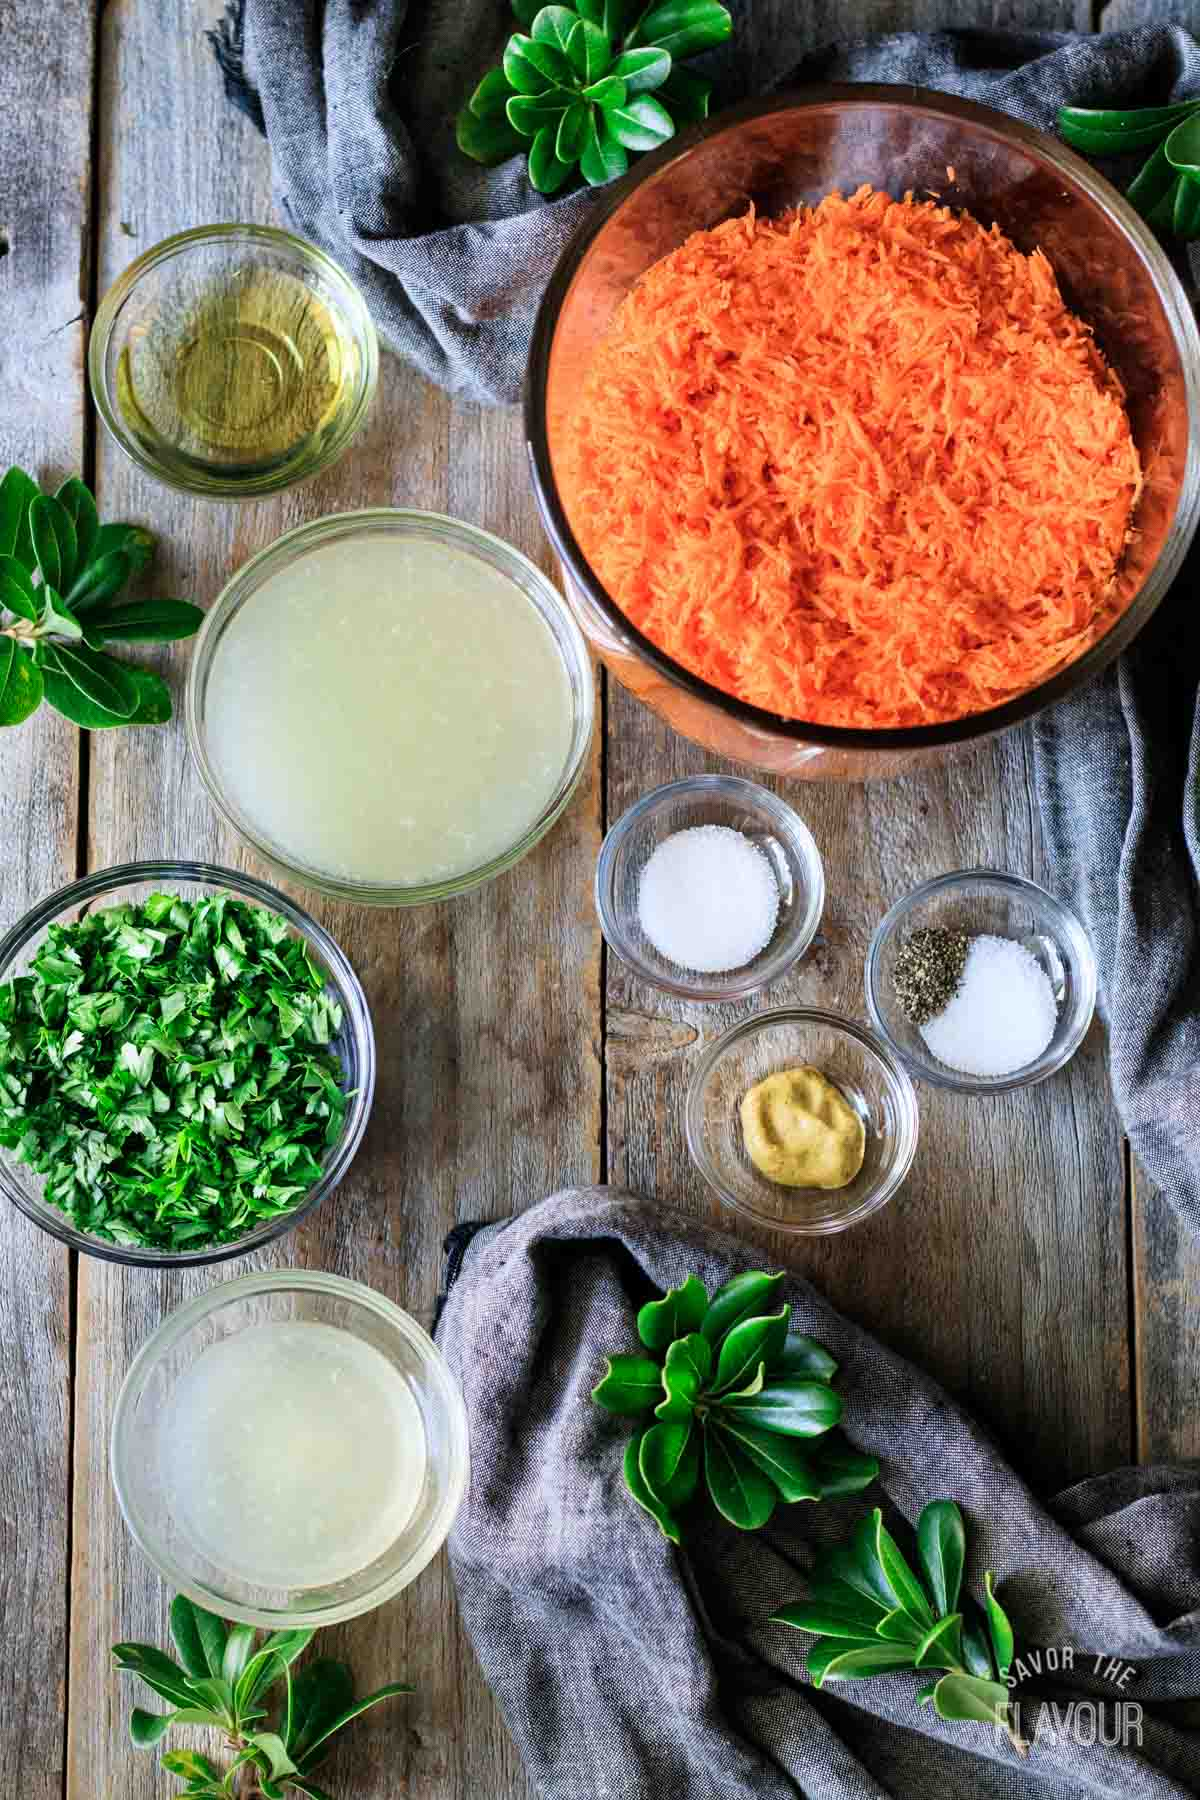 ingredients for French carrot salad